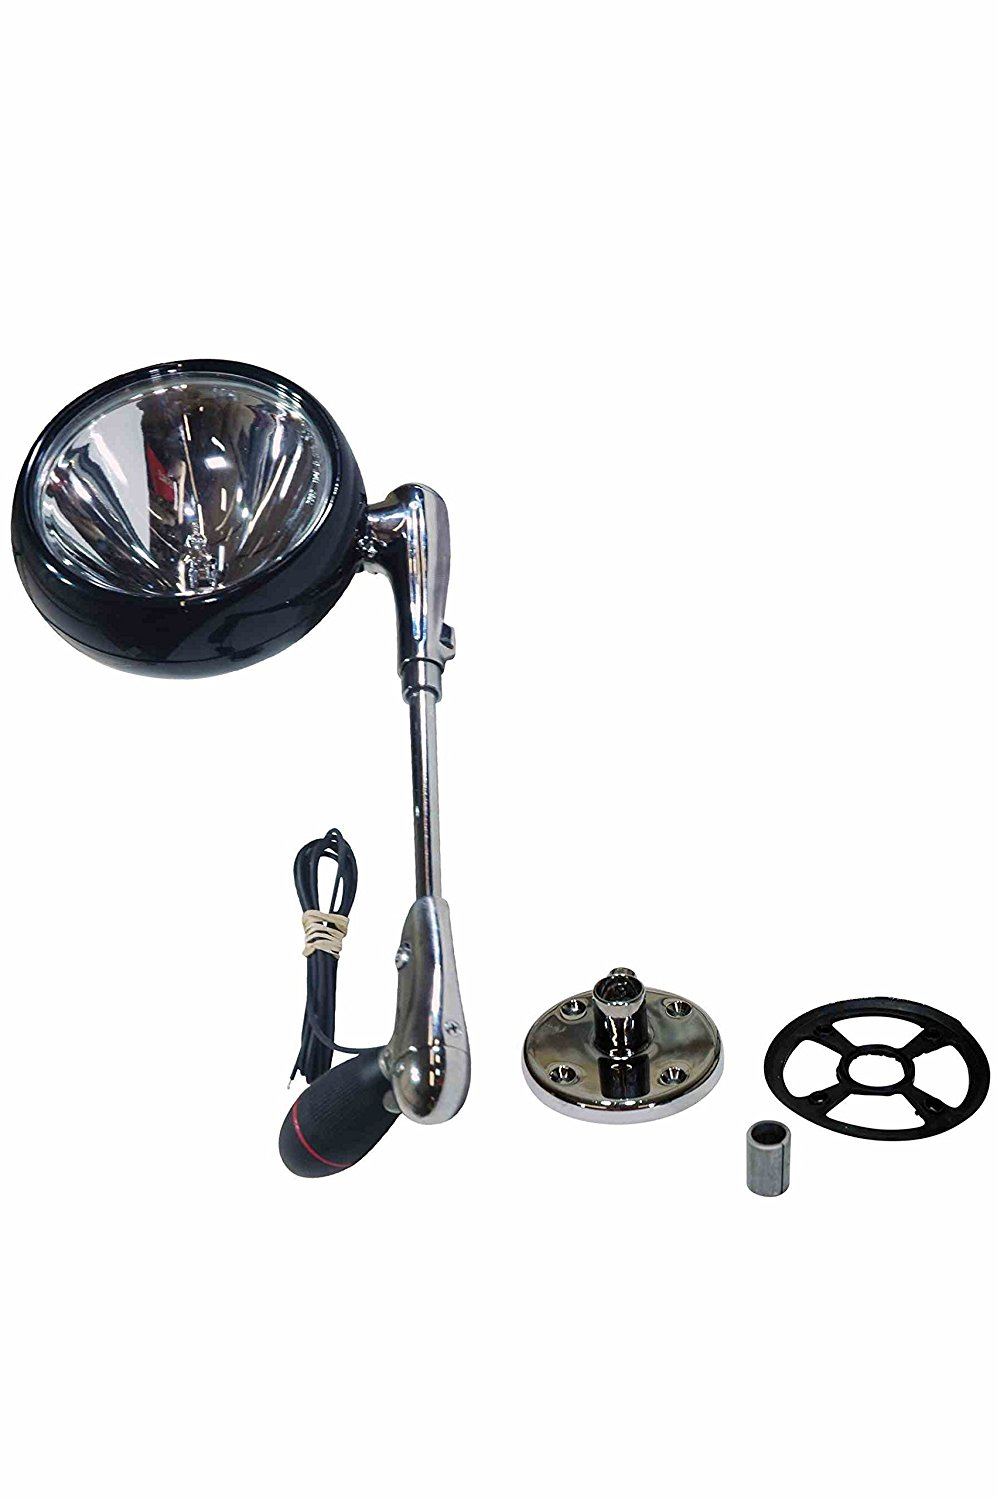 """Larson Electronics 0321OXAQ4AG 50W Roof Mount Spotlight RFM-7-50W with 10.25"""" from center of lamp to center of handle(-chrome-24V)"""